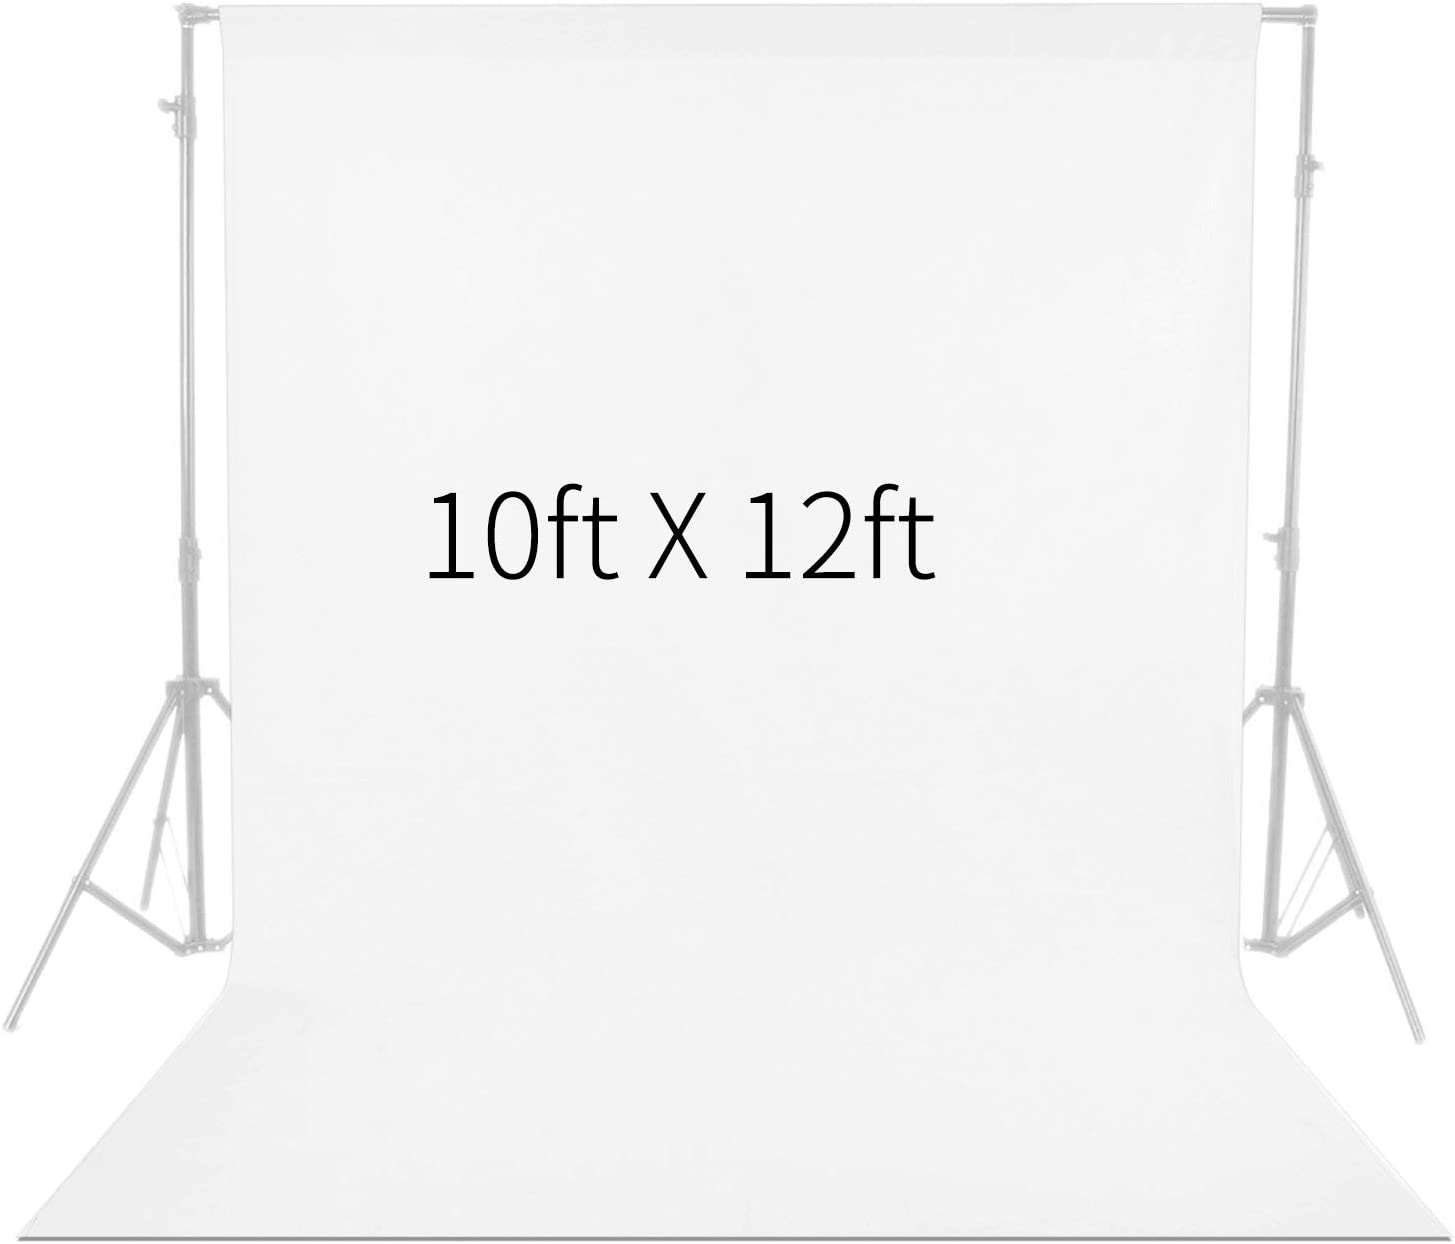 Neewer 10 x 12FT / 3 x 3.6M PRO Photo Studio Fabric Collapsible Backdrop Background for Photography,Video and Televison (Background ONLY) – White